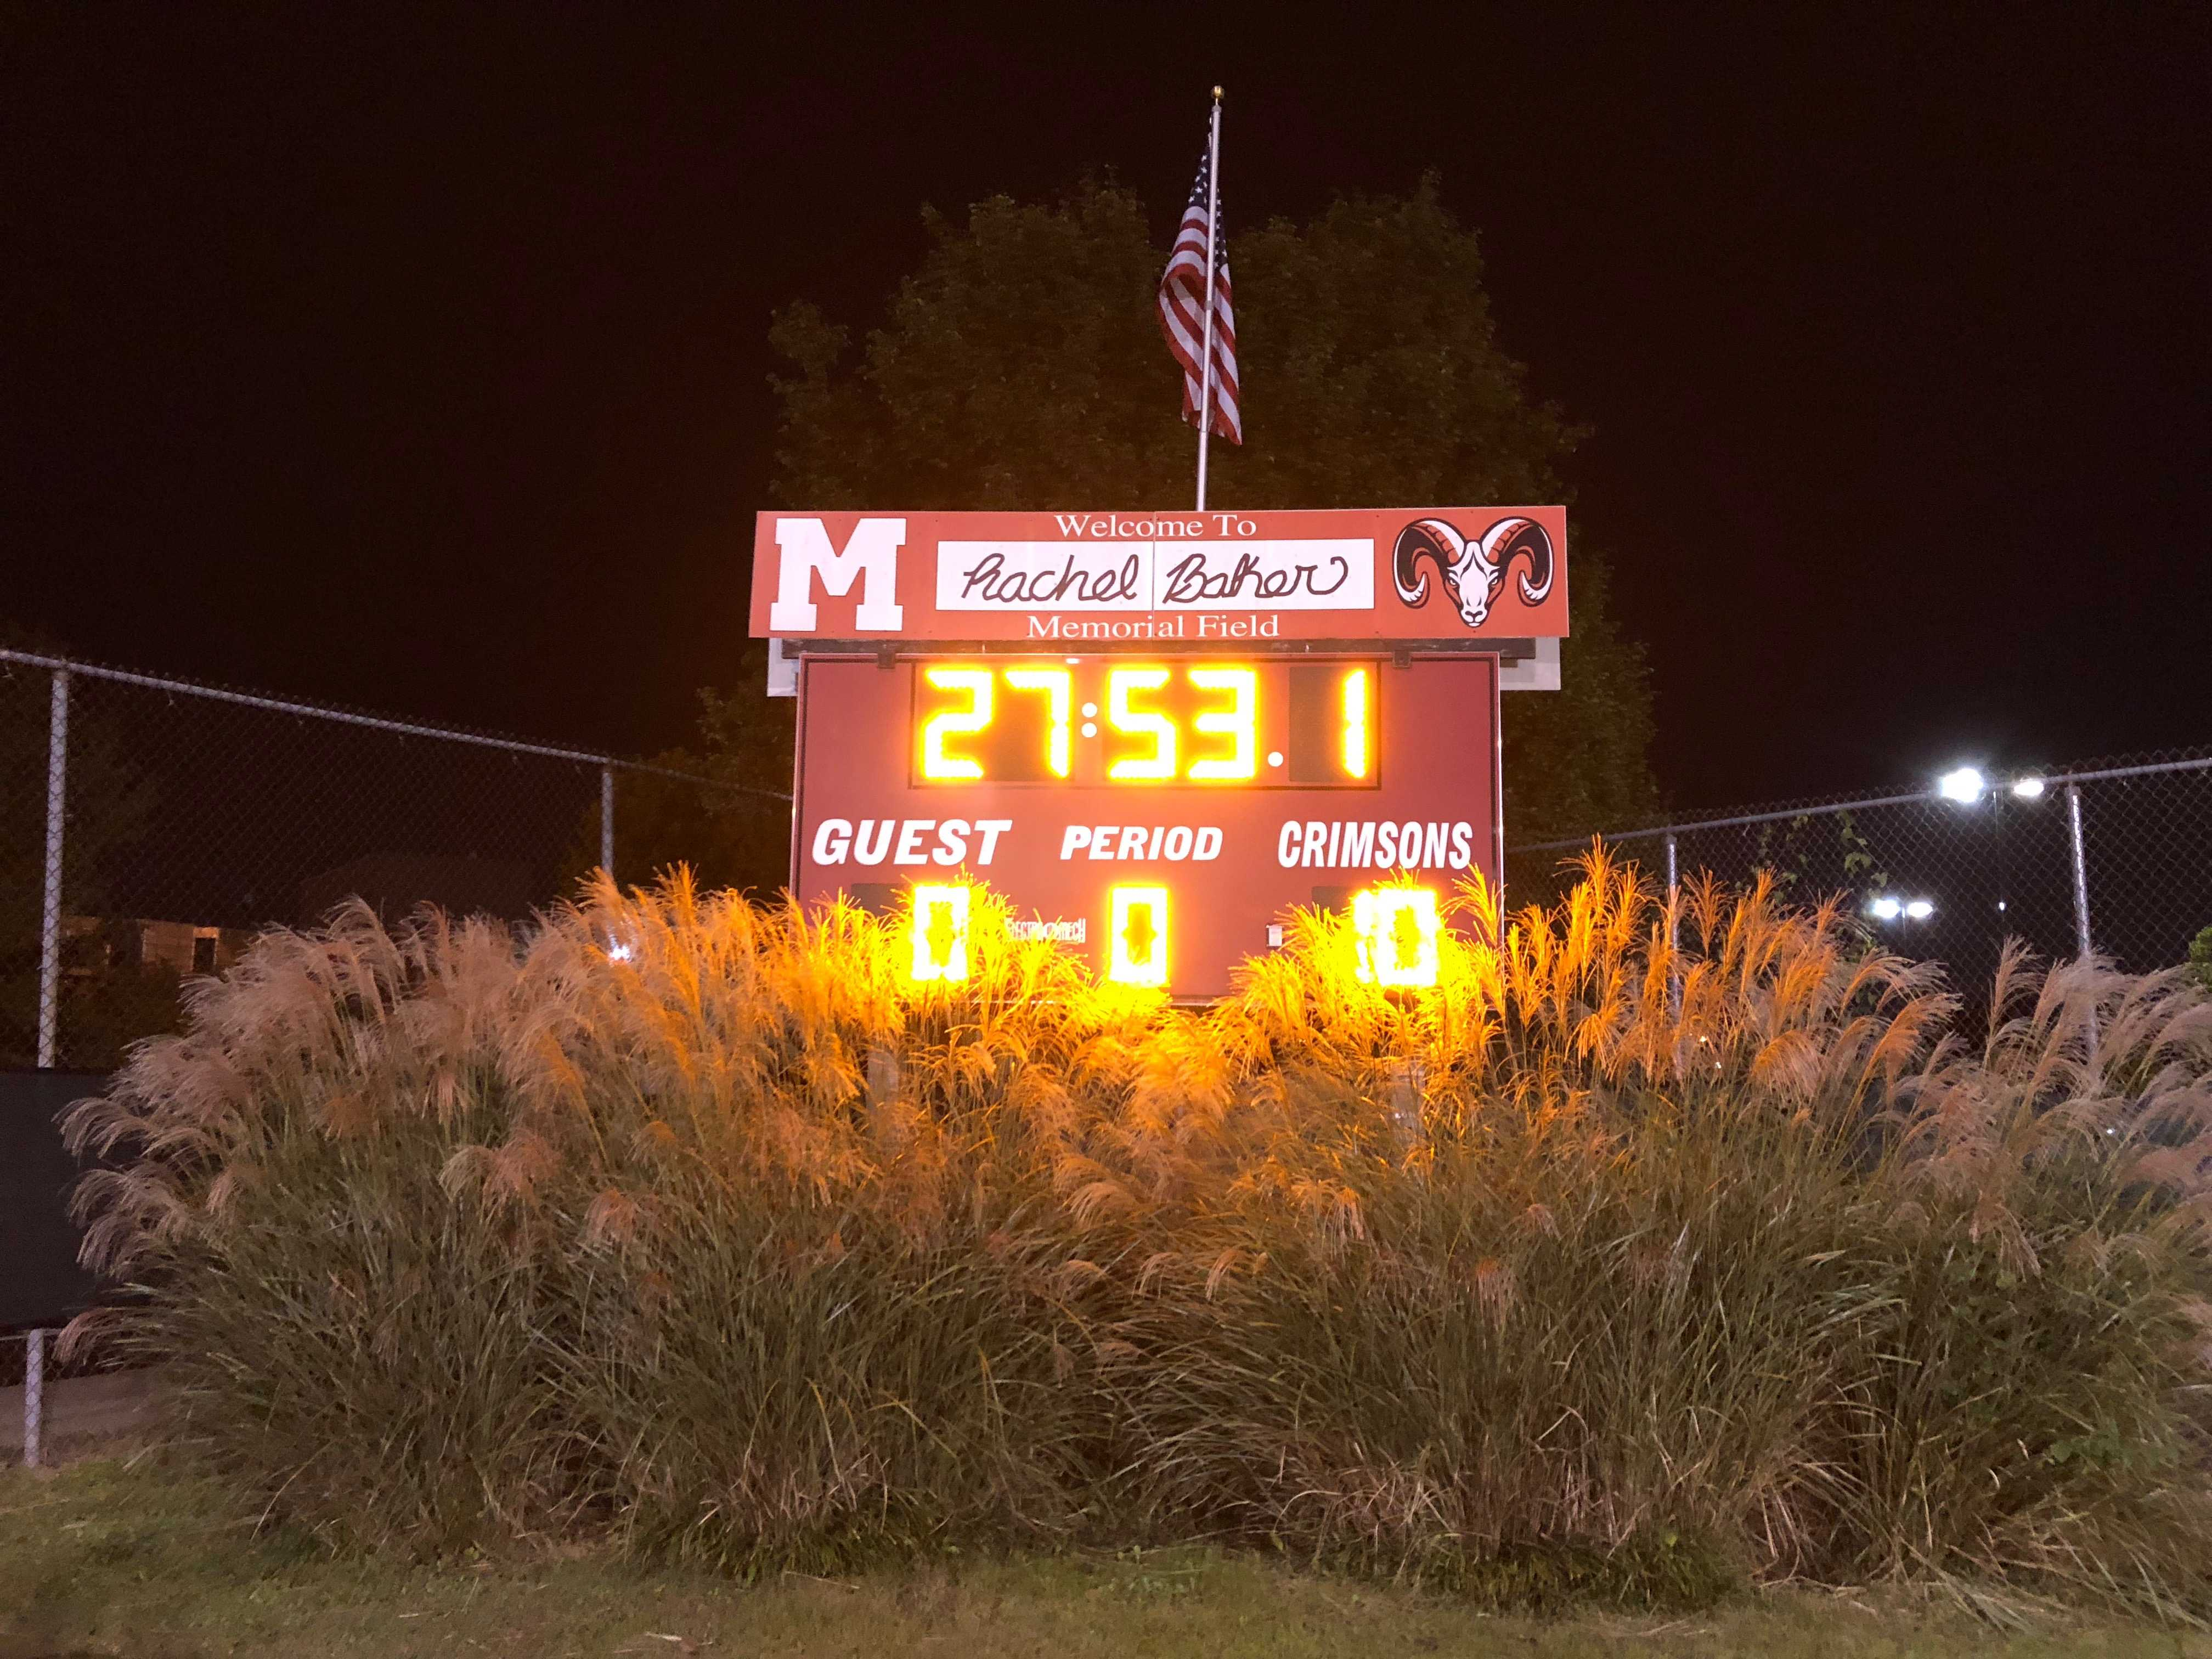 Crimson field hockey wins on senior night